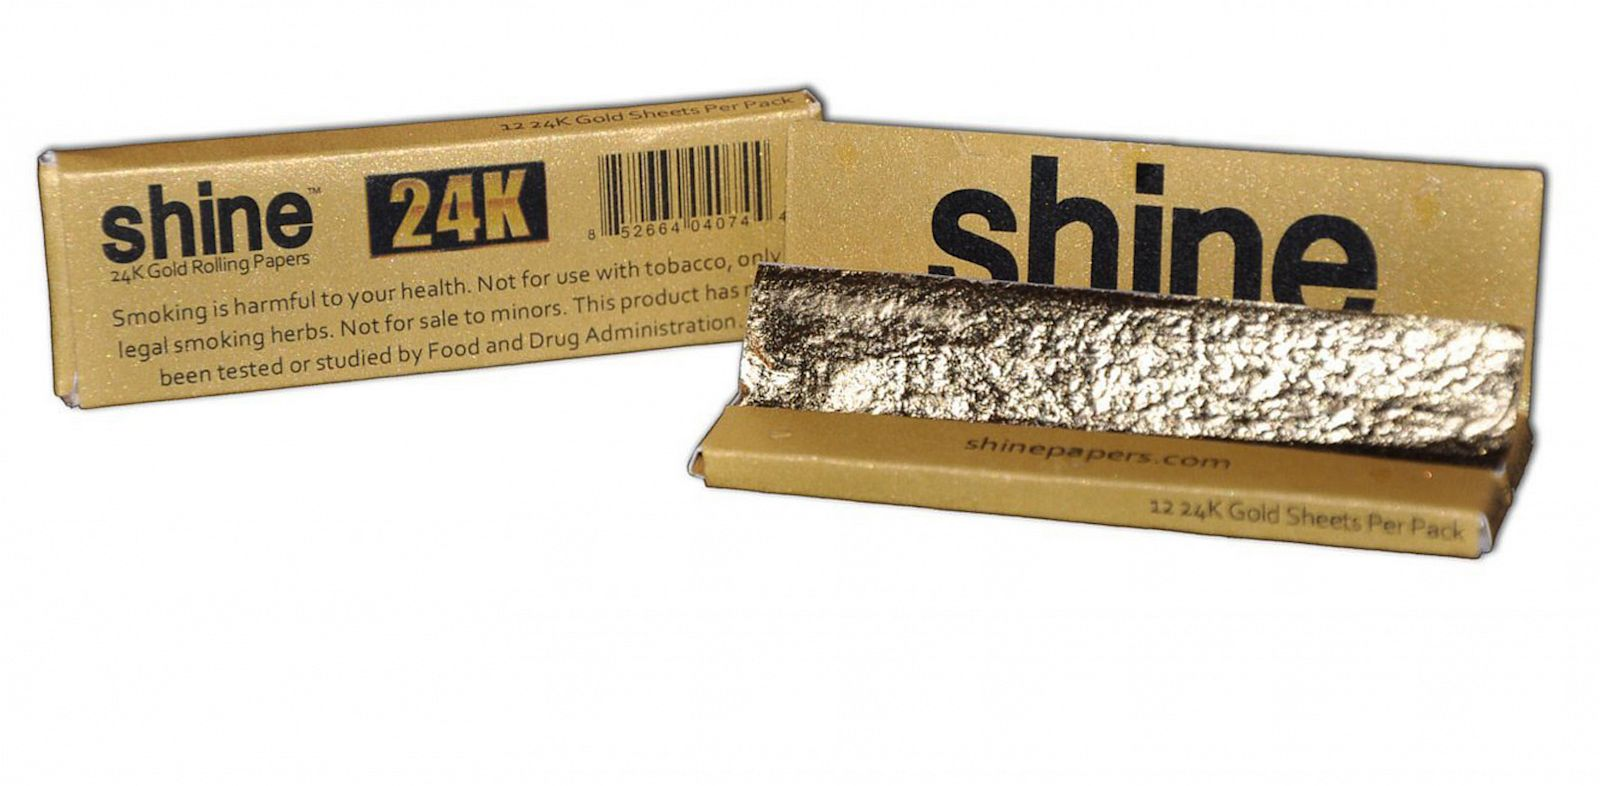 gold rolling papers attract smokers money to burn abc news photo shine papers sells 24k gold rolling papers on amazon com